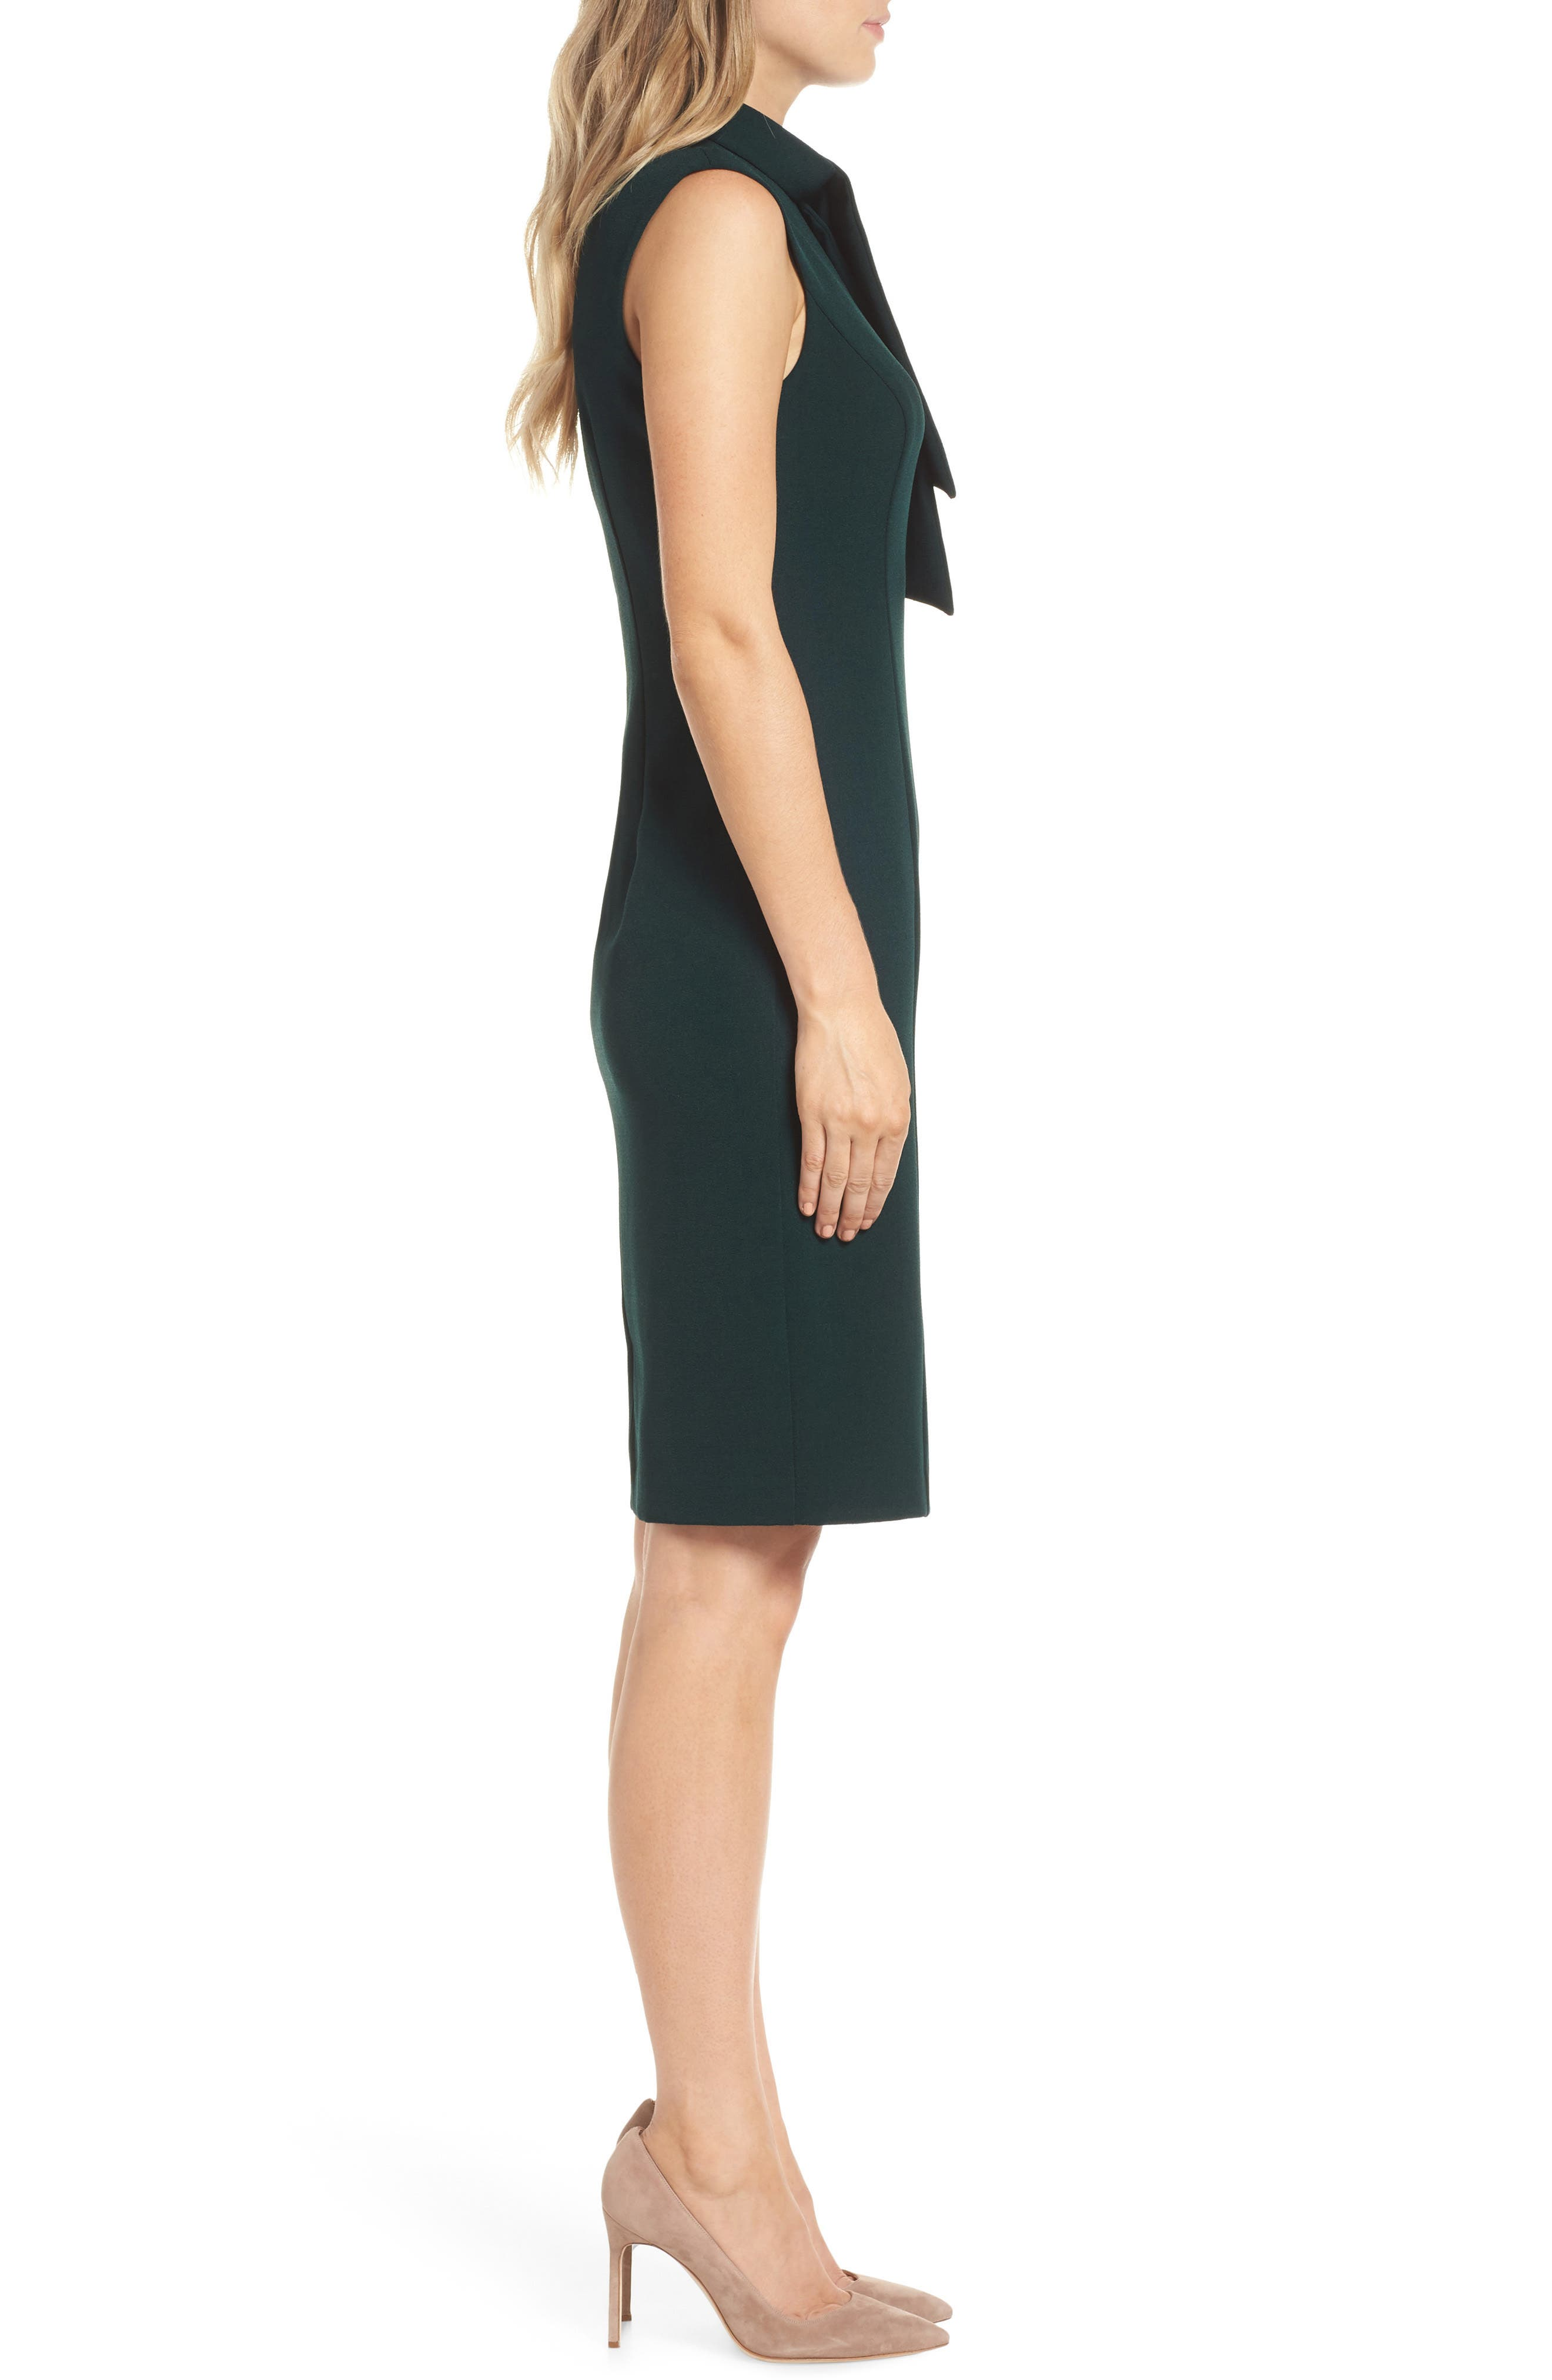 HARPER ROSE,                             Tie Neck Sheath Dress,                             Alternate thumbnail 4, color,                             302